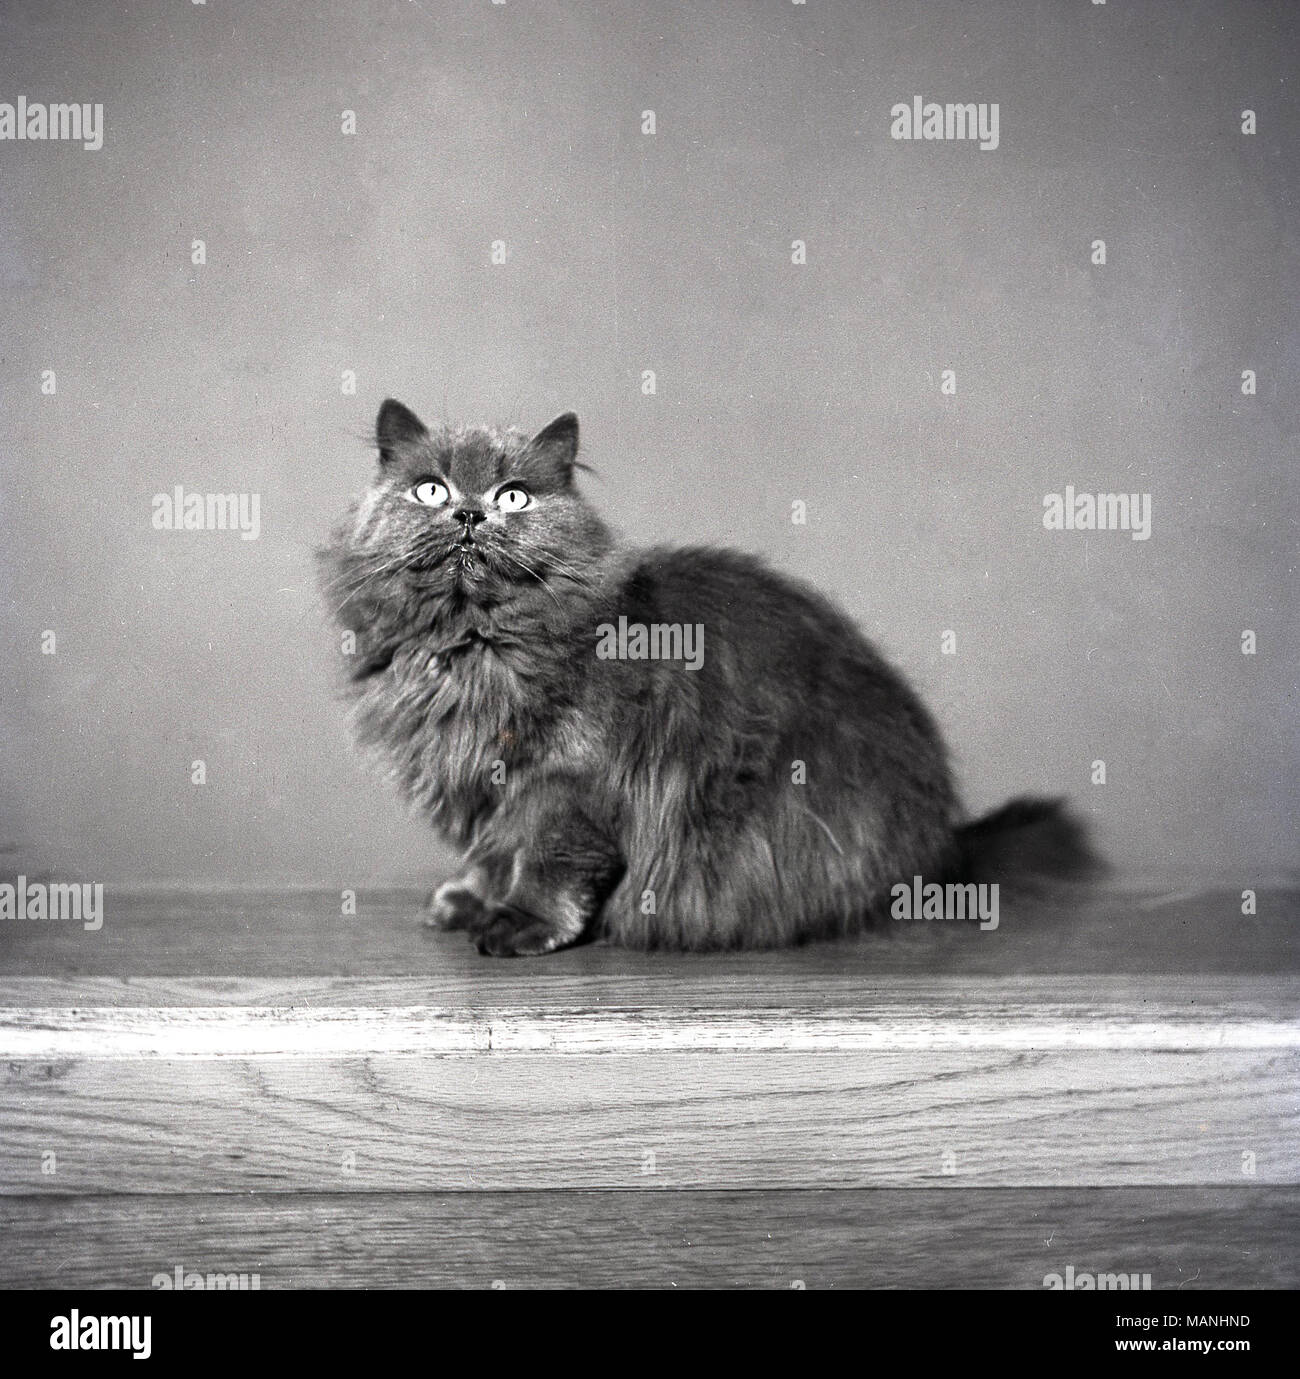 1950s, historical, portrait of a furry domestic cat. - Stock Image